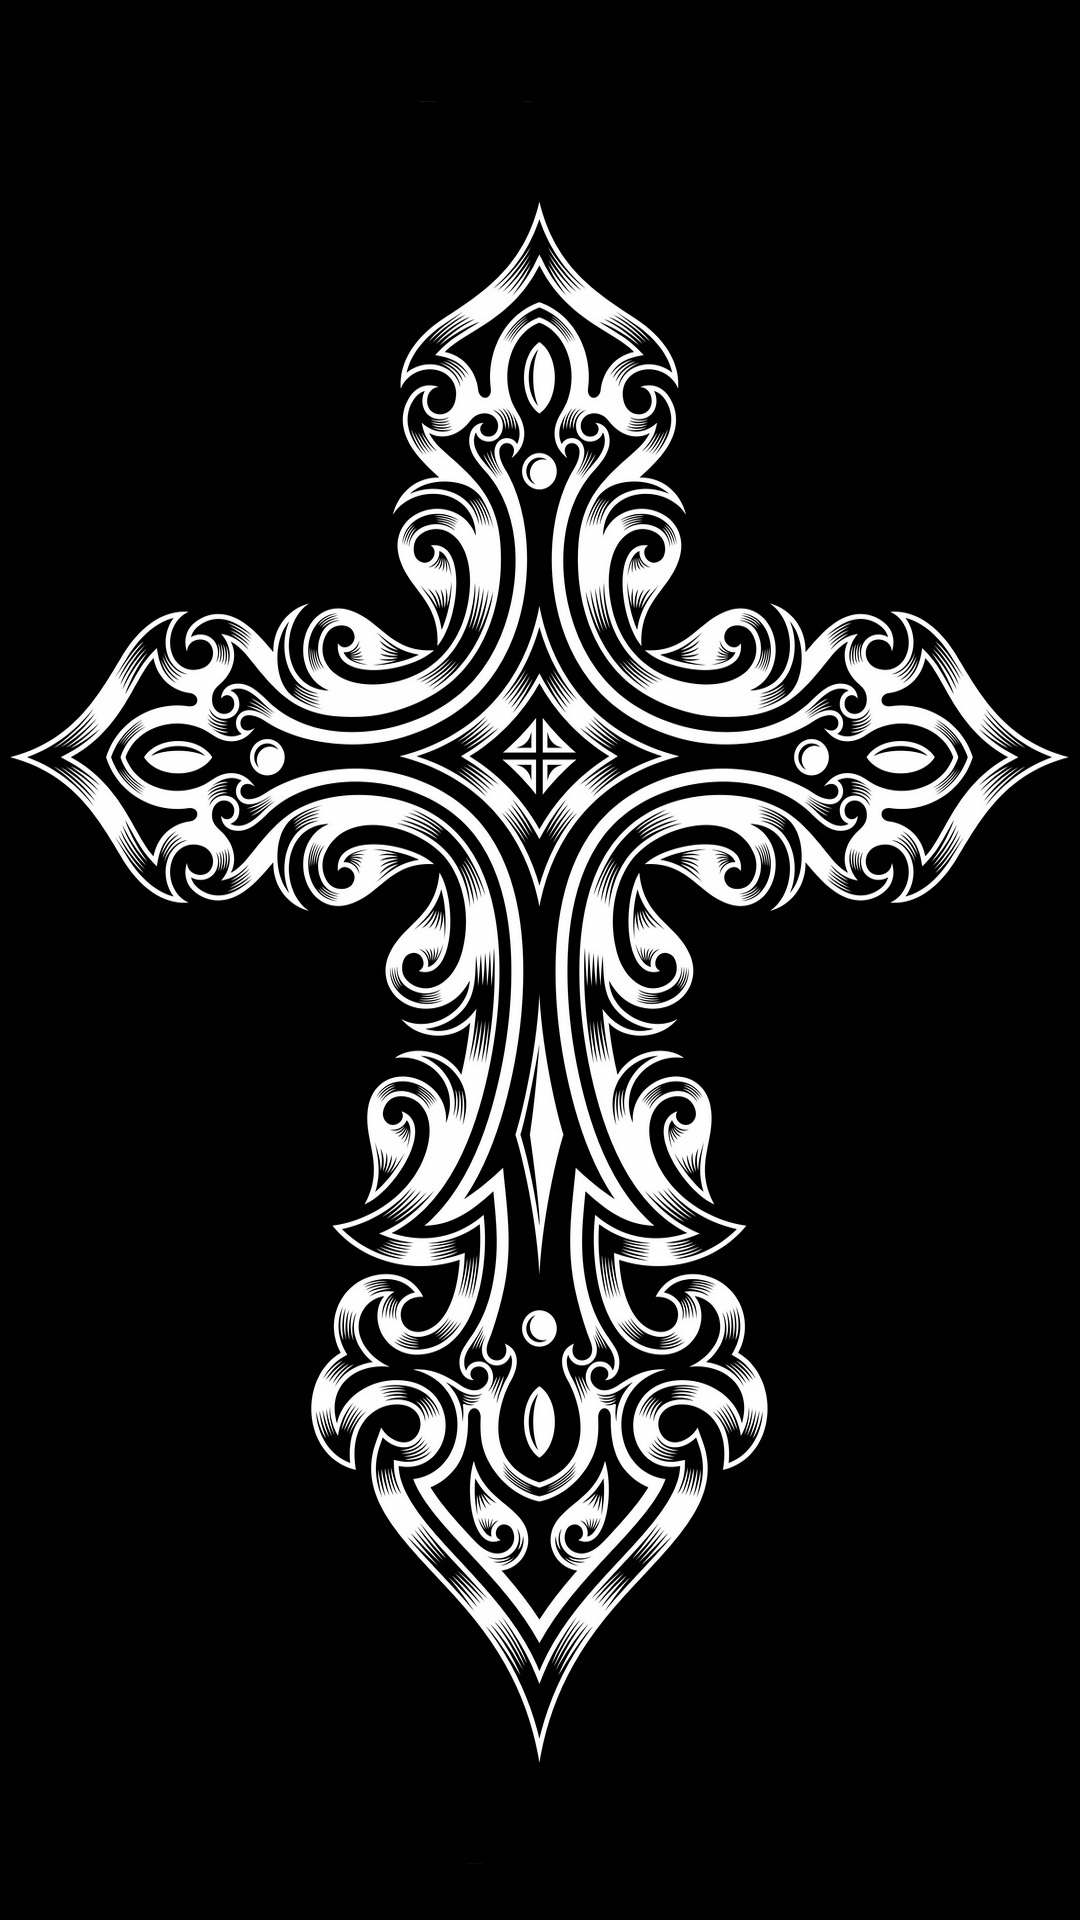 tribal cross   high resolution wallpapers for iPhone 6 Plus 1080x1920